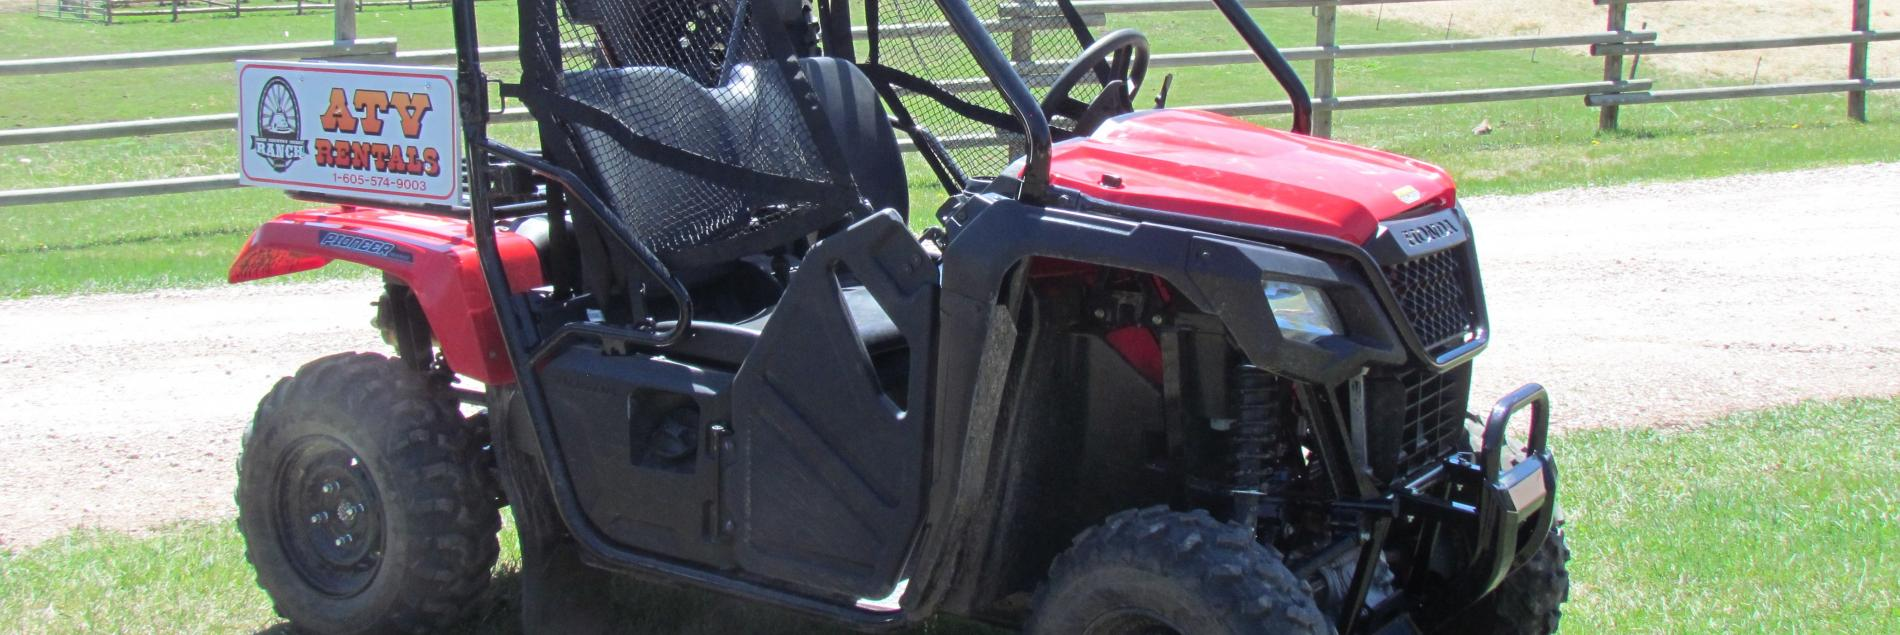 ATV Rentals at High Country Guest Ranch